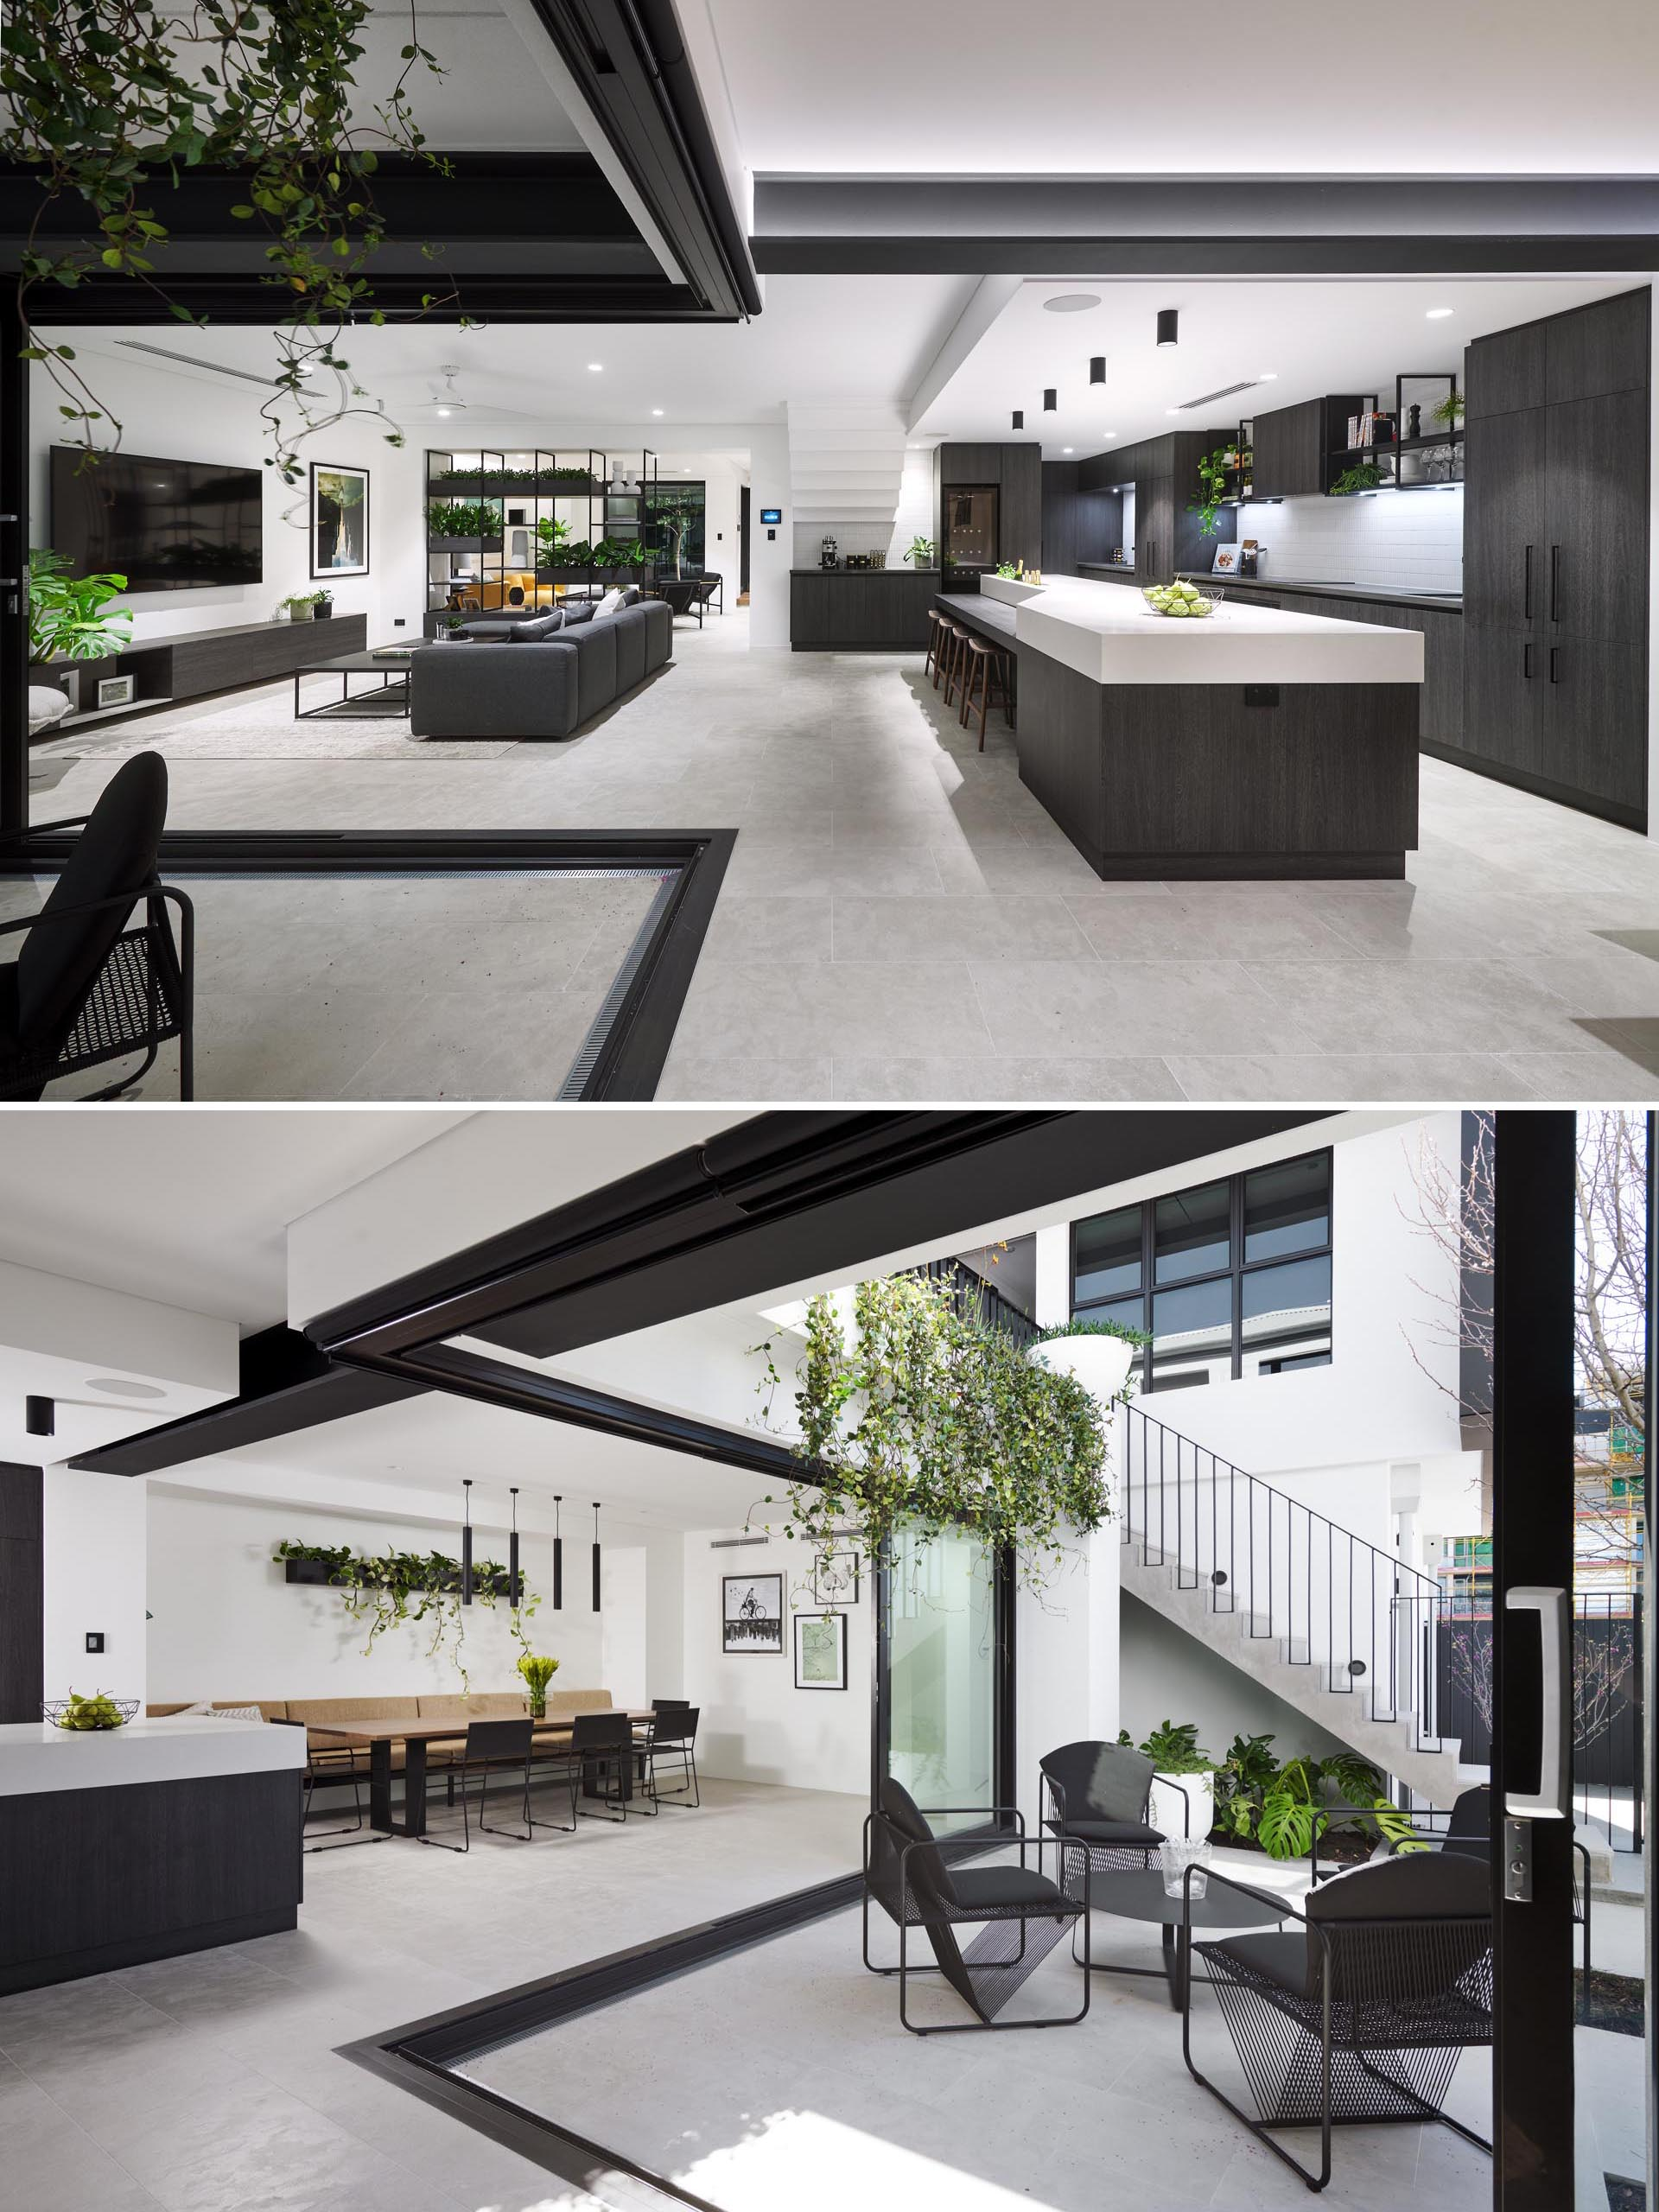 This modern house has retractable glass walls that open the interior spaces to a small outdoor courtyard. The dining room is adjacent to the kitchen and includes a long built-in banquette bench, a wall-mounted planter, and black dining chairs.